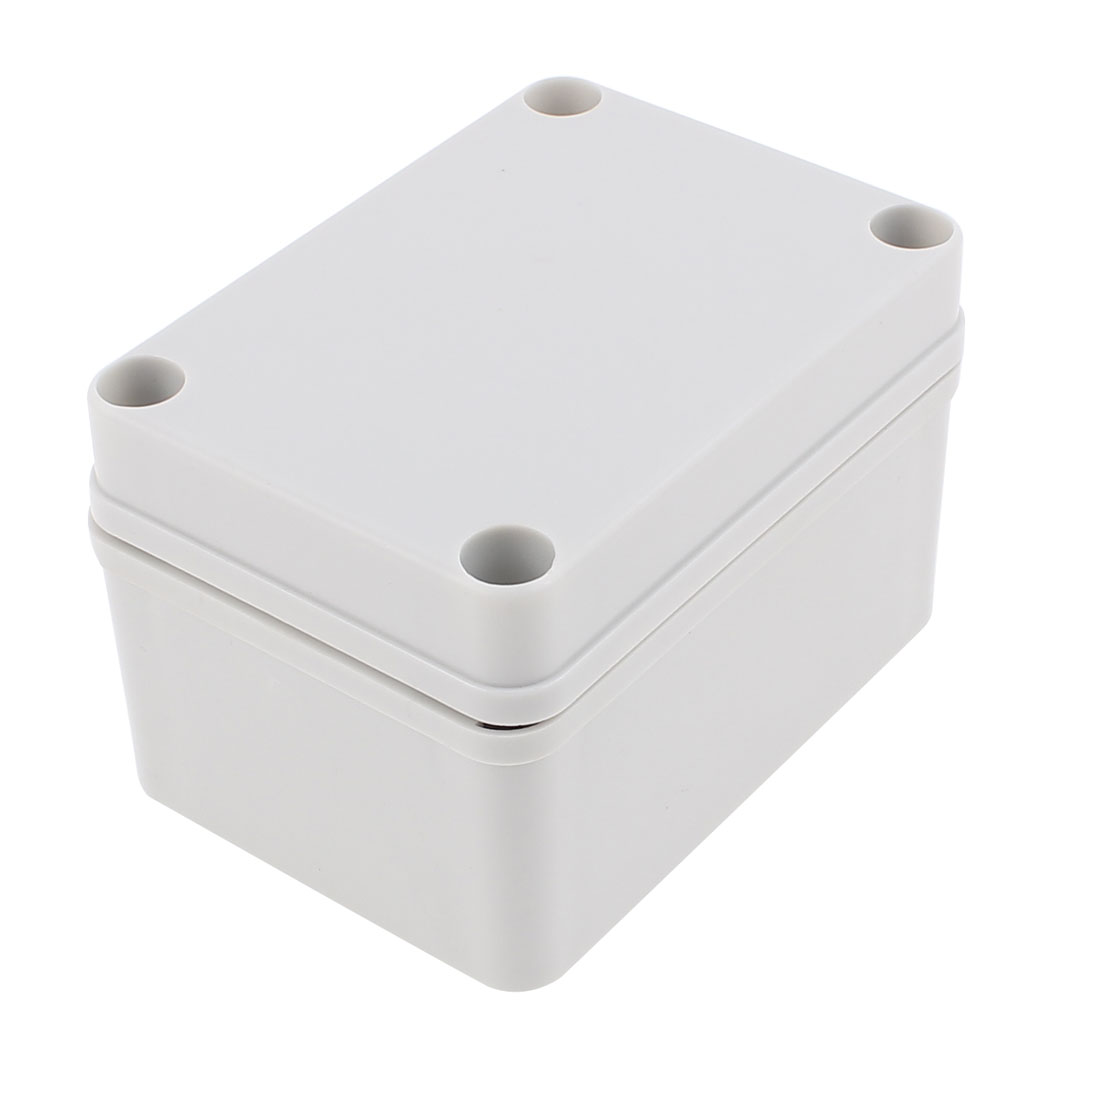 110 x 80 x 70mm Dustproof IP65 Junction Box Terminal Connecting Box Enclosure